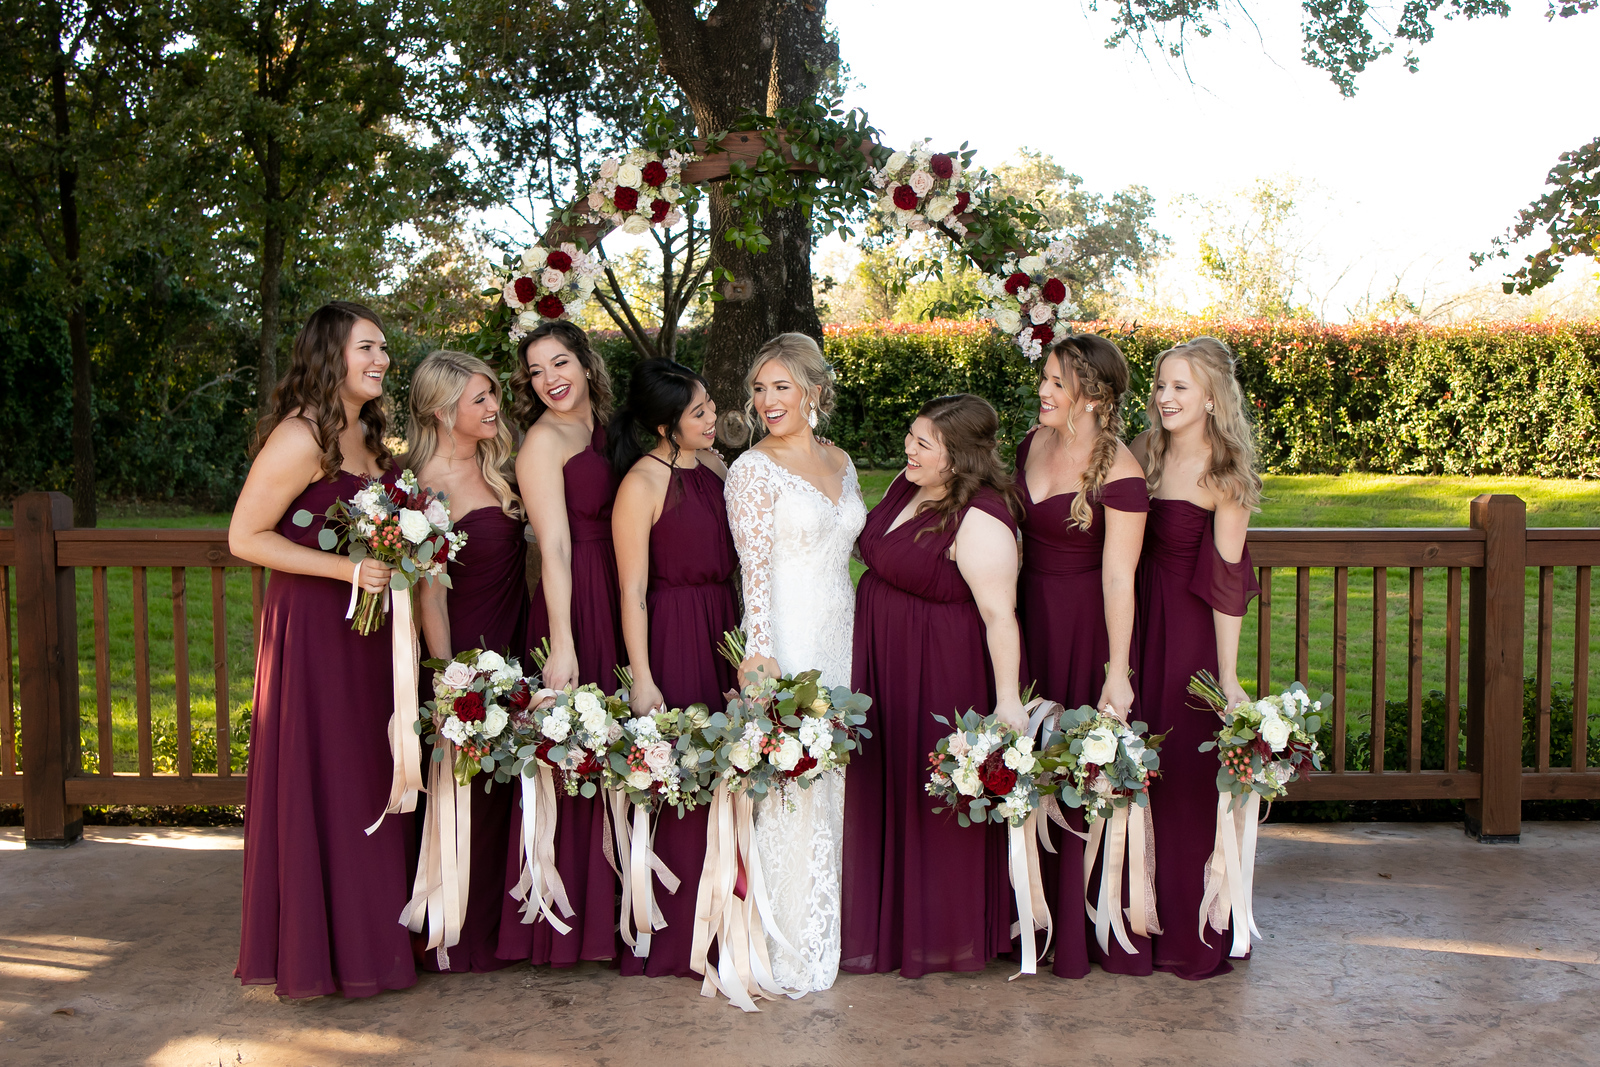 a bride posing for a photo with her seven bridesmaids wearing burgundy dresses all looking at her